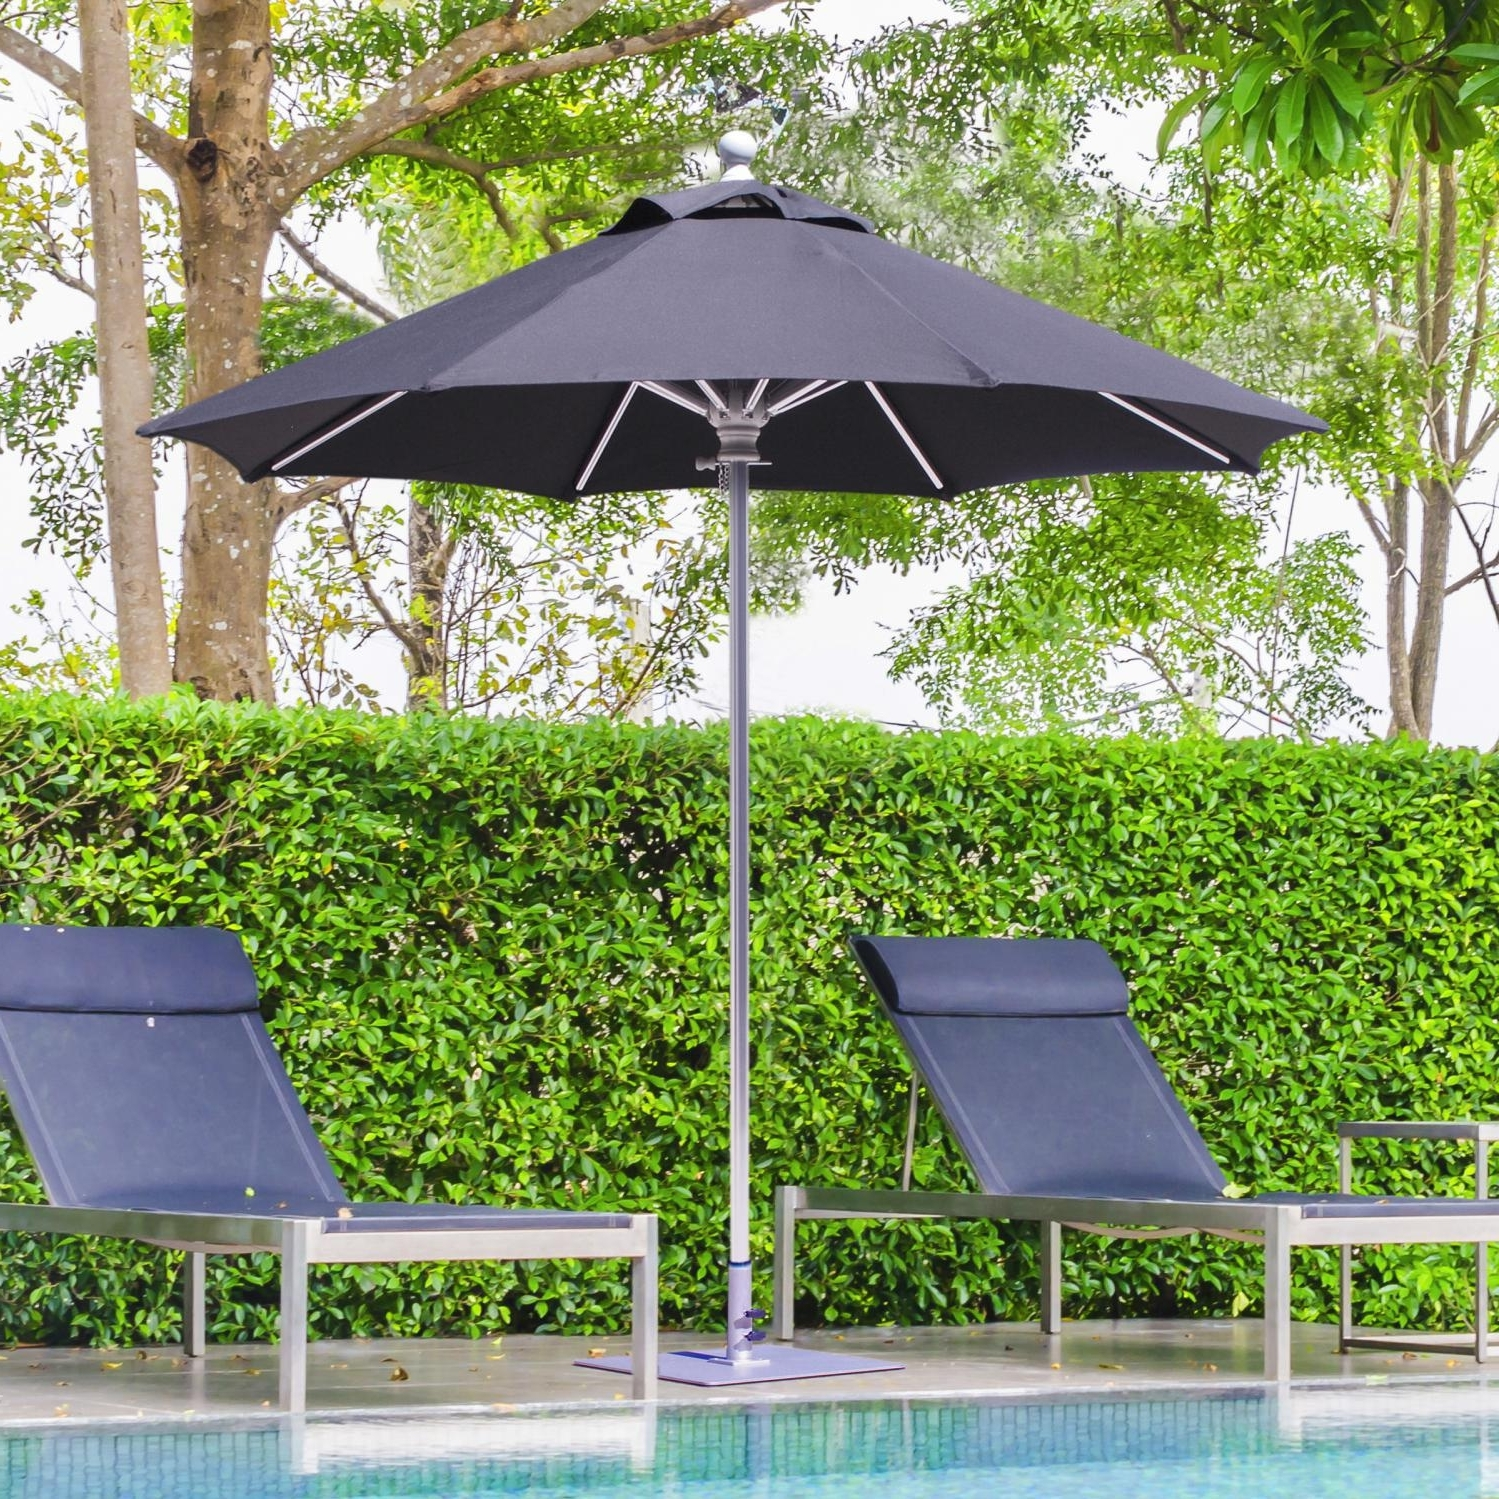 Newest Galtech Sr Series 7 1/2 Ft Aluminum Patio Umbrella With Manual Lift Throughout Sunbrella Outdoor Patio Umbrellas (View 9 of 20)